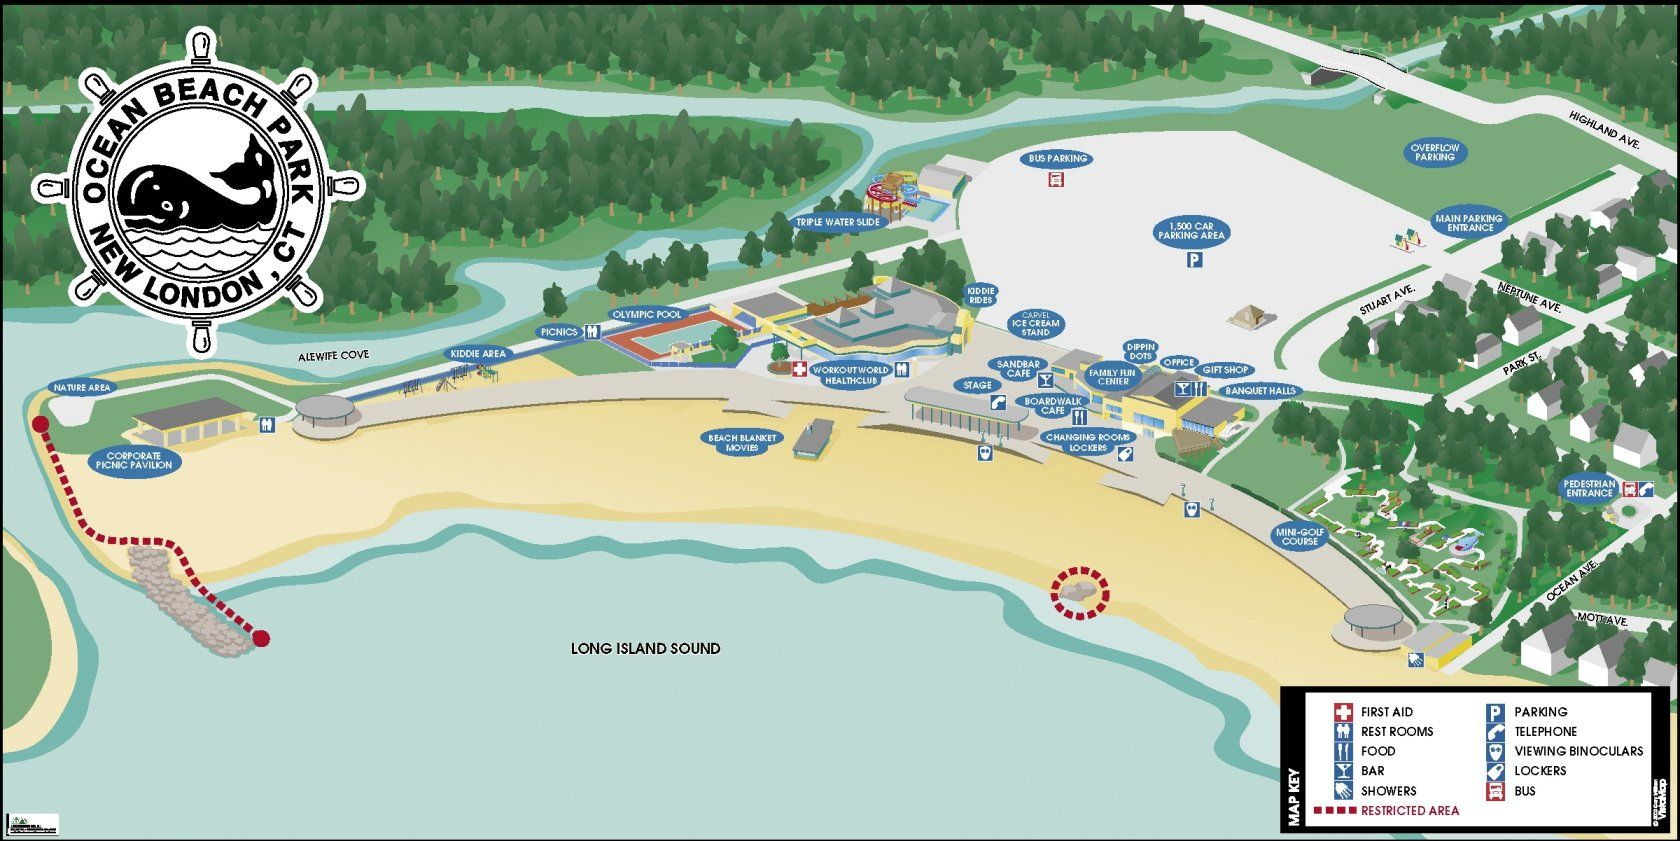 ocean beach park, new london ct map | maps&plans | Pinterest | Ocean ...